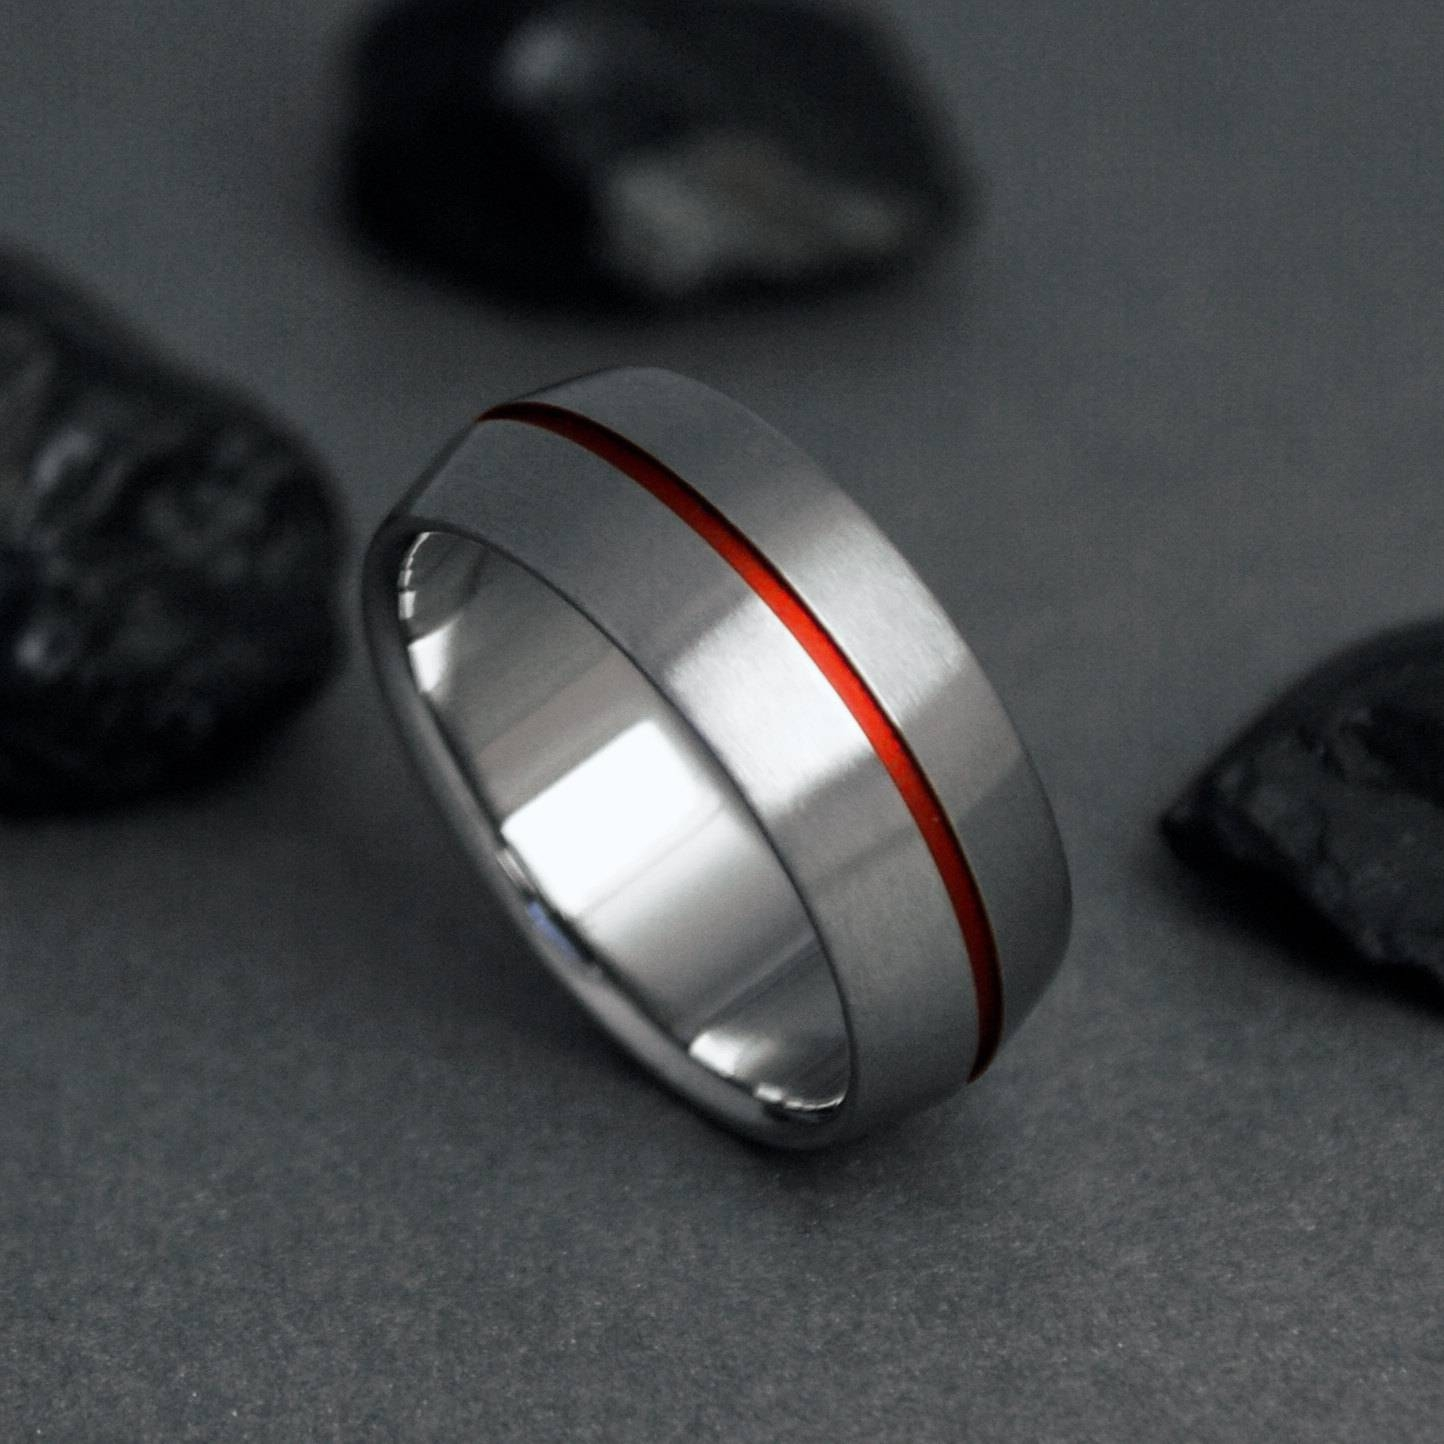 Titanium Wedding Band Red Pinstripe Red Thread Of Fate Regarding Red String Of Fate Wedding Rings (View 14 of 15)